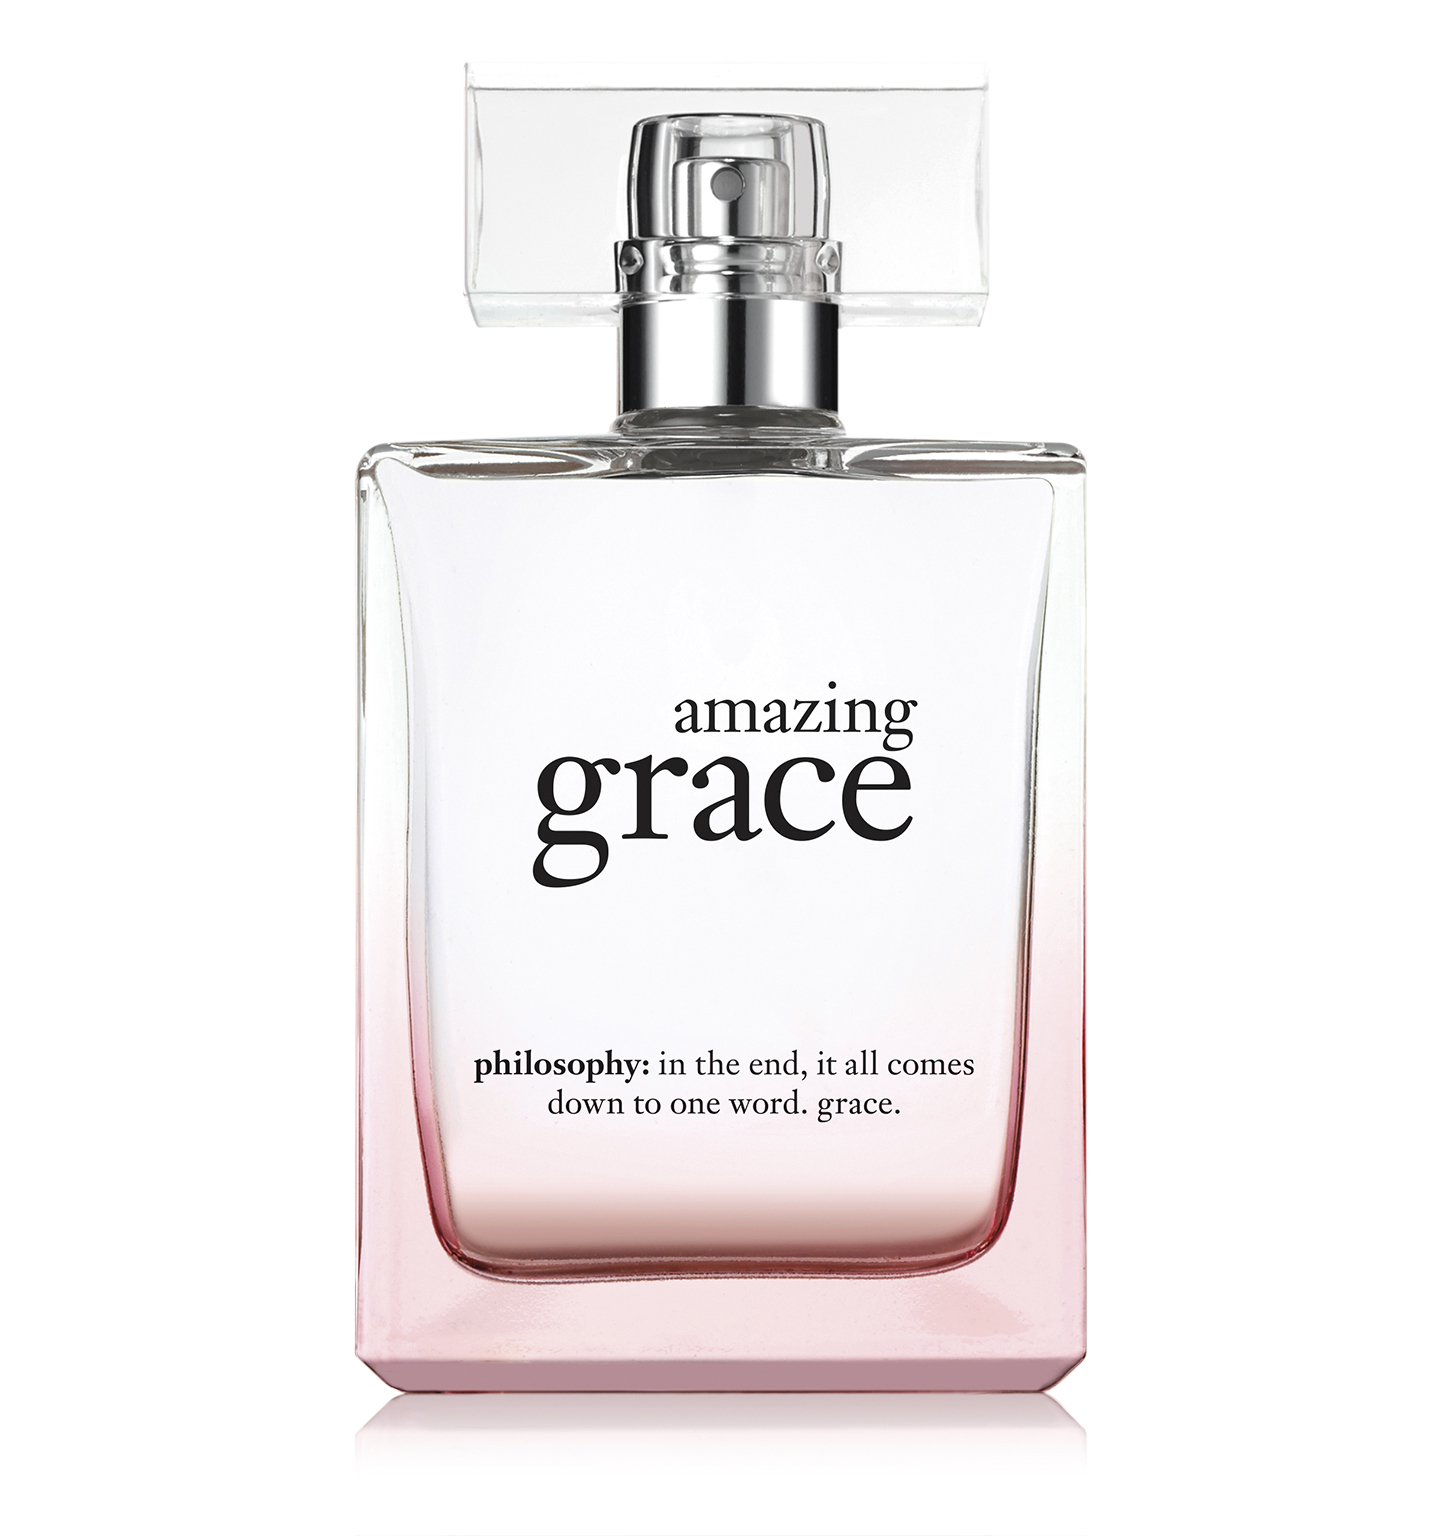 philosophy, amazing grace eau de parfum